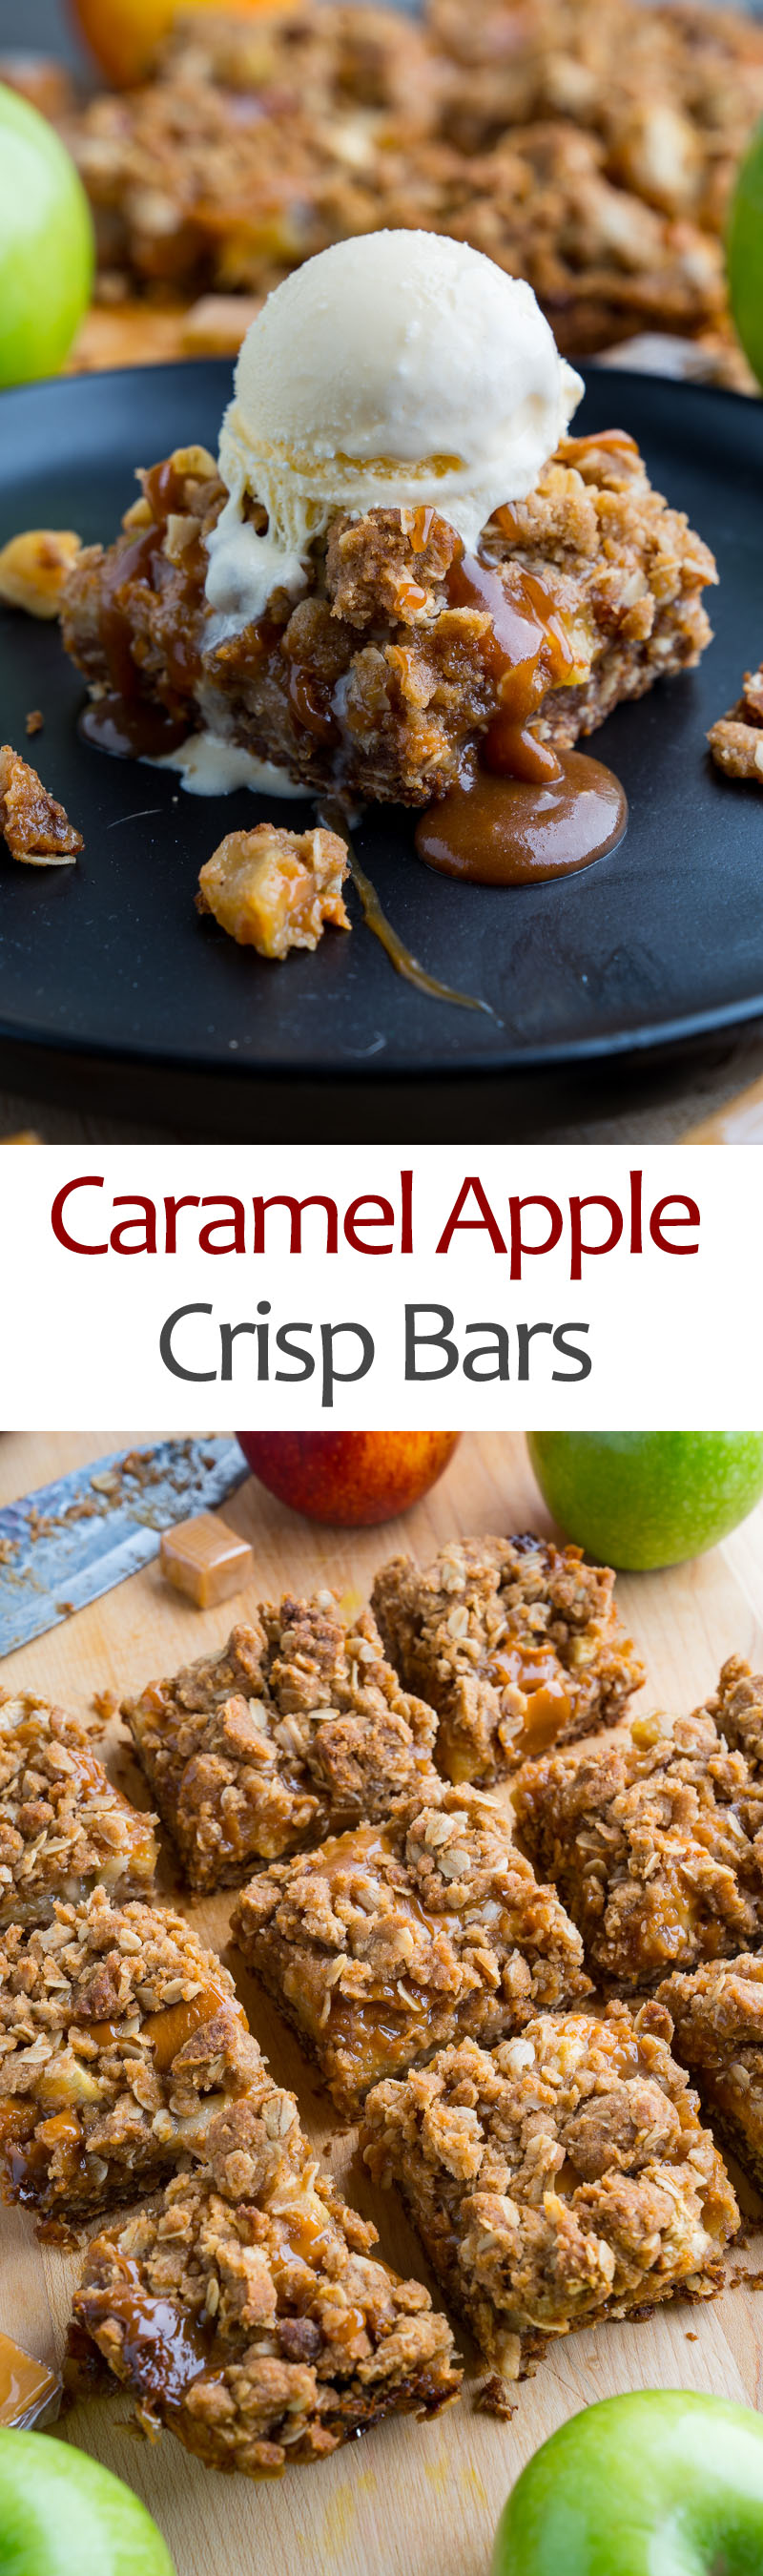 Caramel Apple Crisp Bars